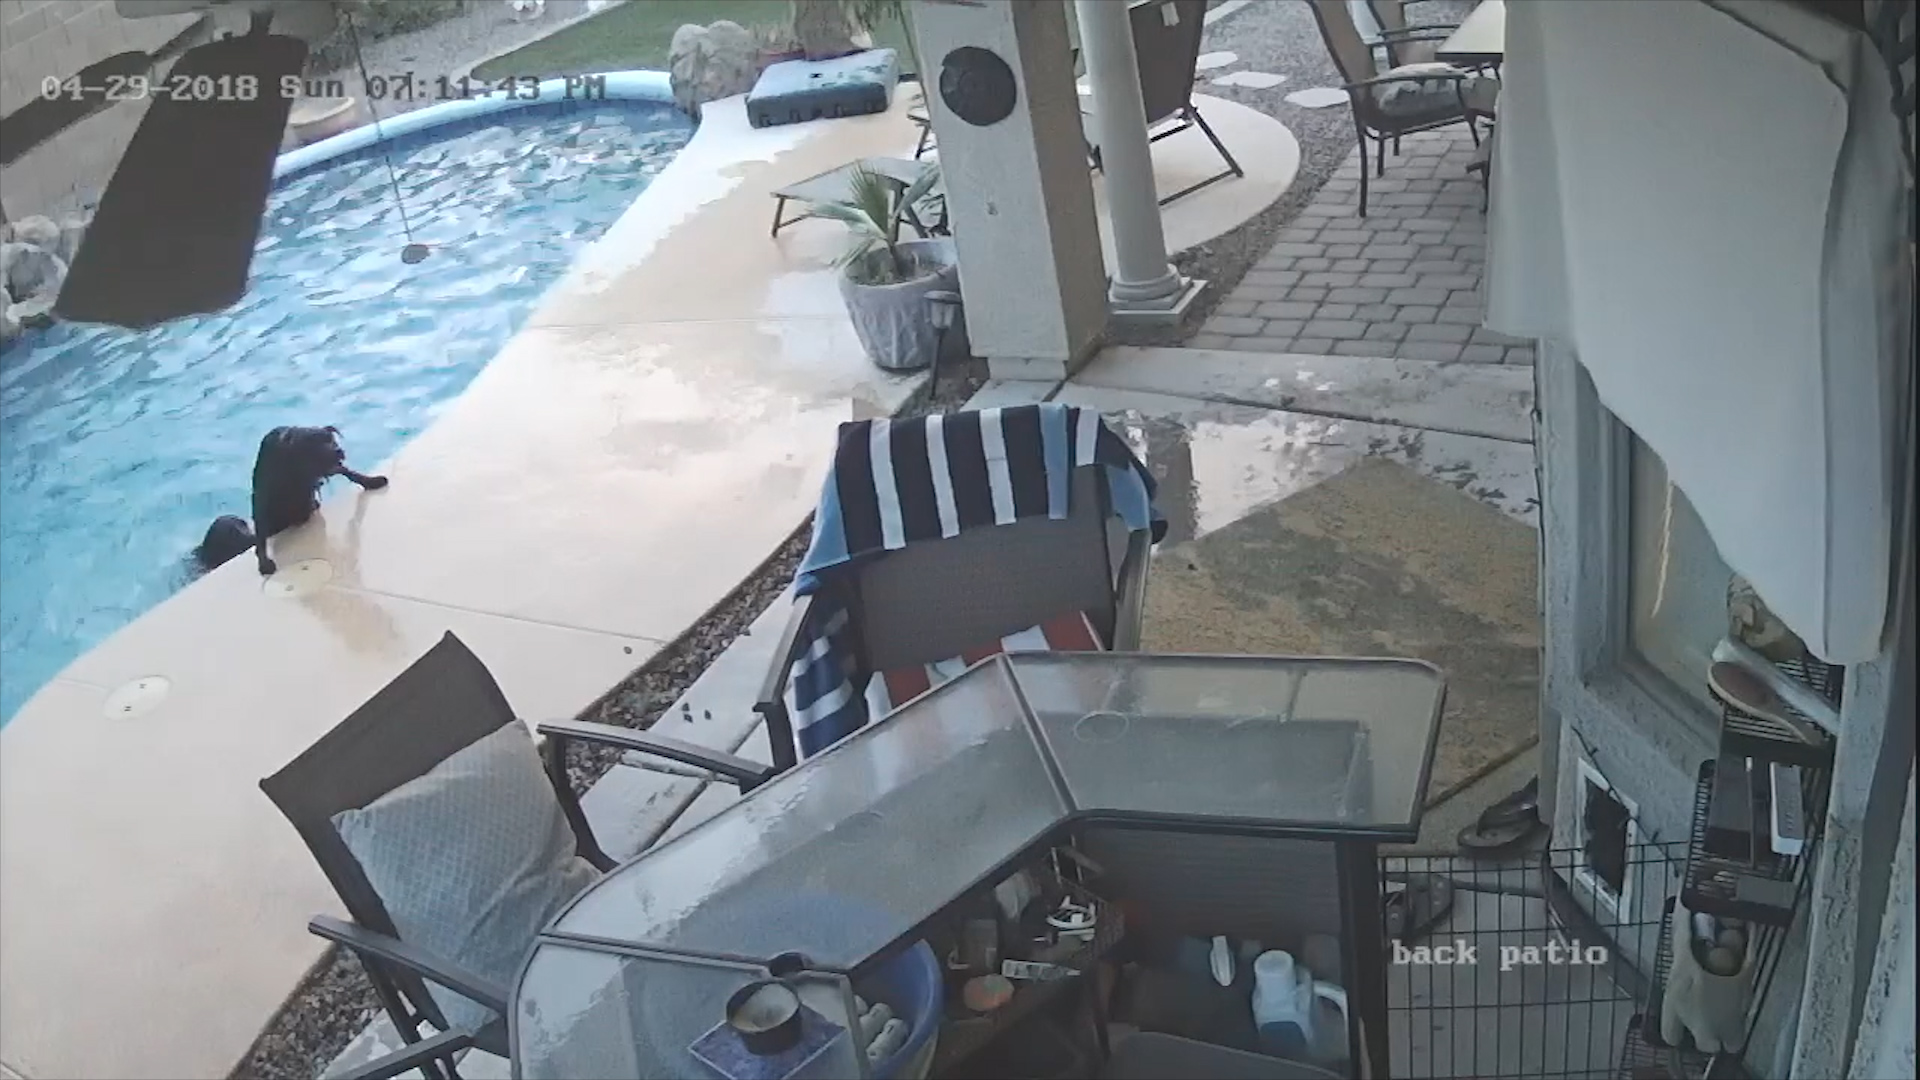 'Hero' dog saves another dog from drowning in Arizona pool